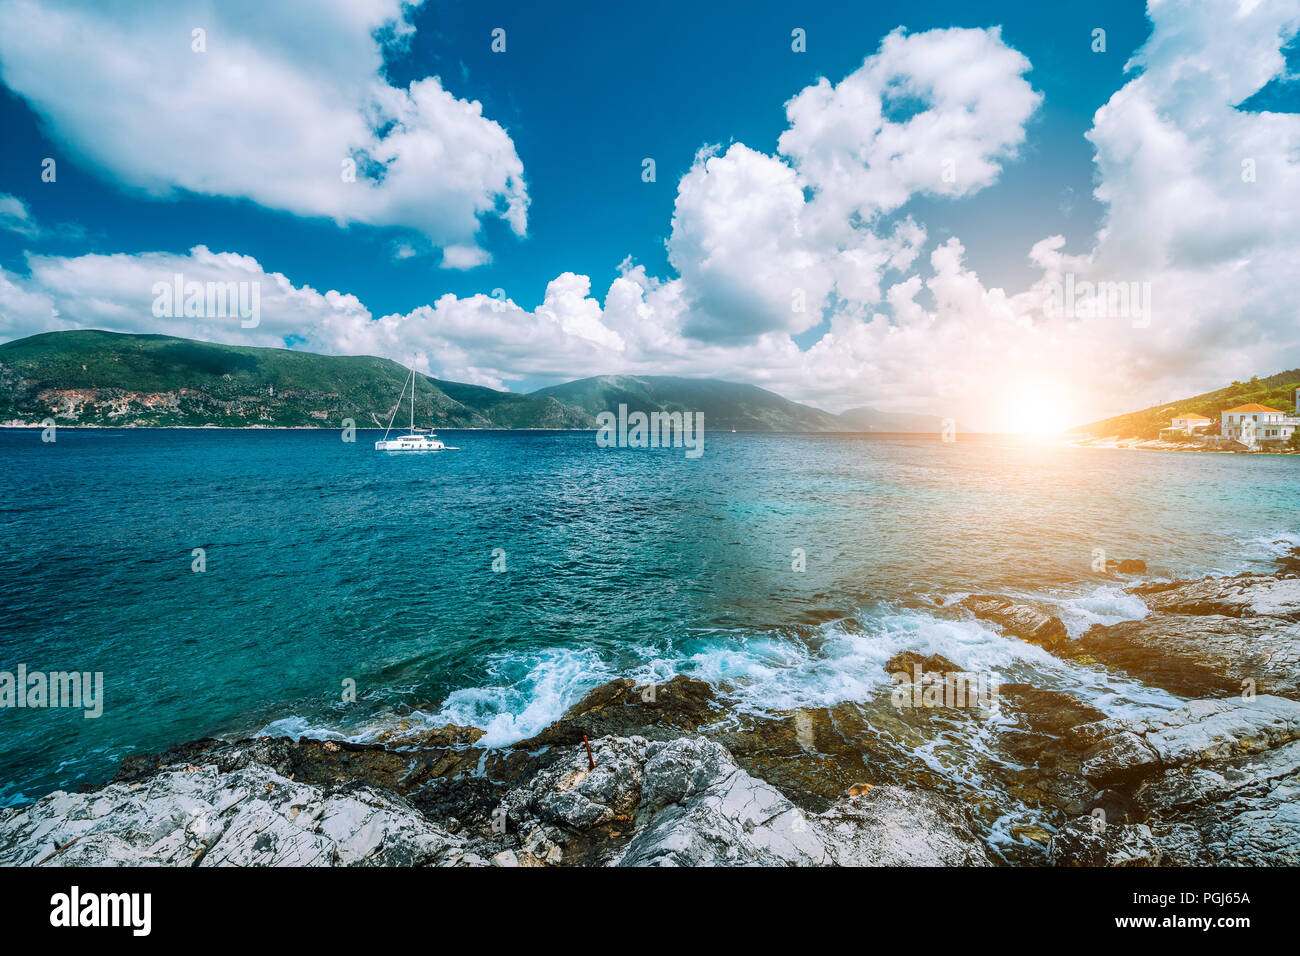 Crystal clear transparent blue turquoise teal Mediterranean sea water in Fiskardo town. White yacht in open sea at anchor under amazing white clouds and sun light, Kefalonia, Ionian islands, Greece - Stock Image